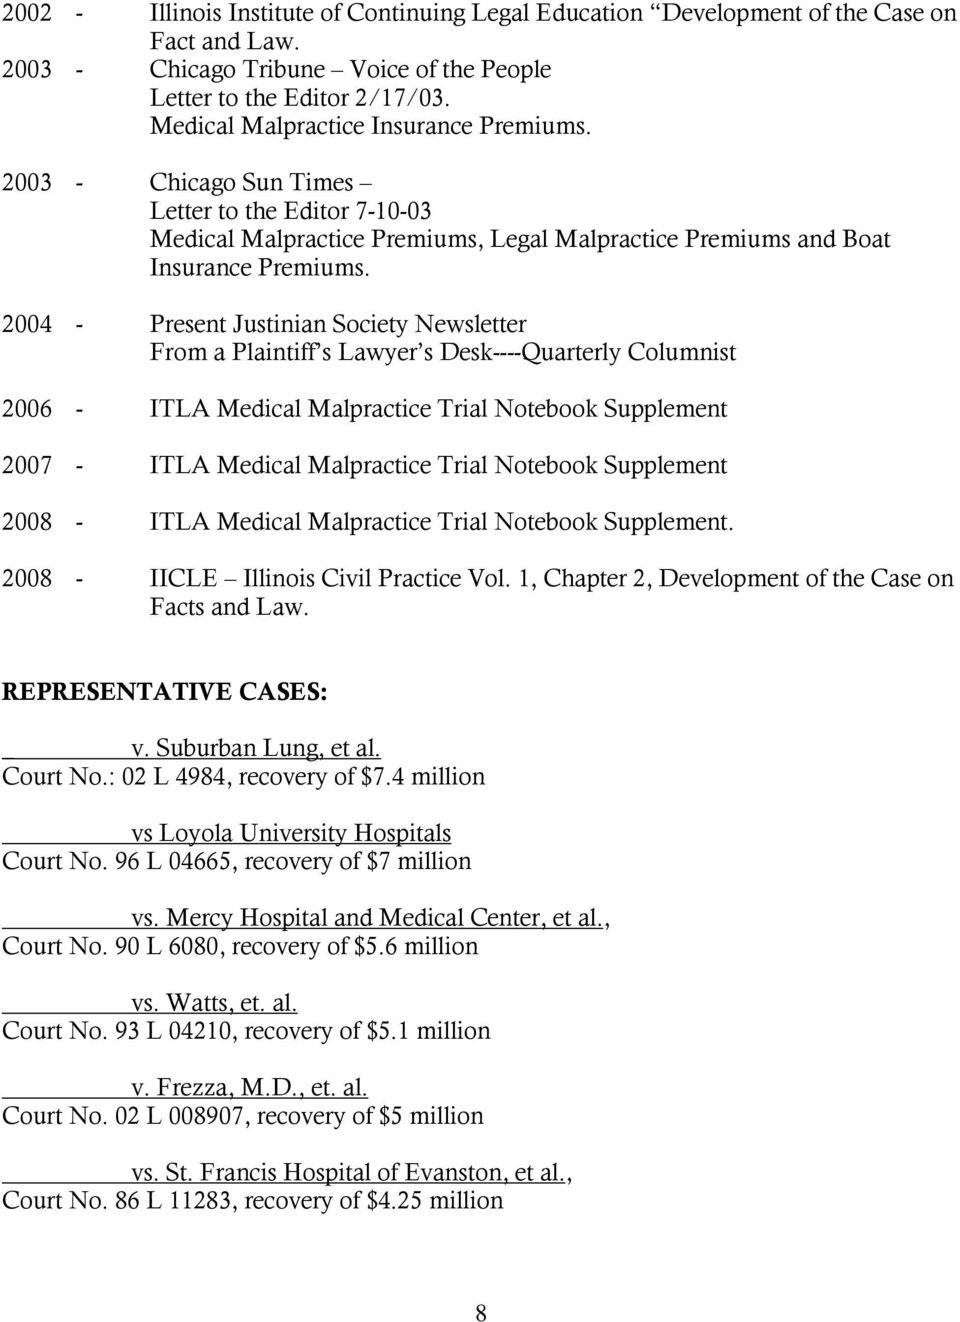 2004 - Present Justinian Society Newsletter From a Plaintiff s Lawyer s Desk----Quarterly Columnist 2006 - ITLA Medical Malpractice Trial Notebook Supplement 2007 - ITLA Medical Malpractice Trial